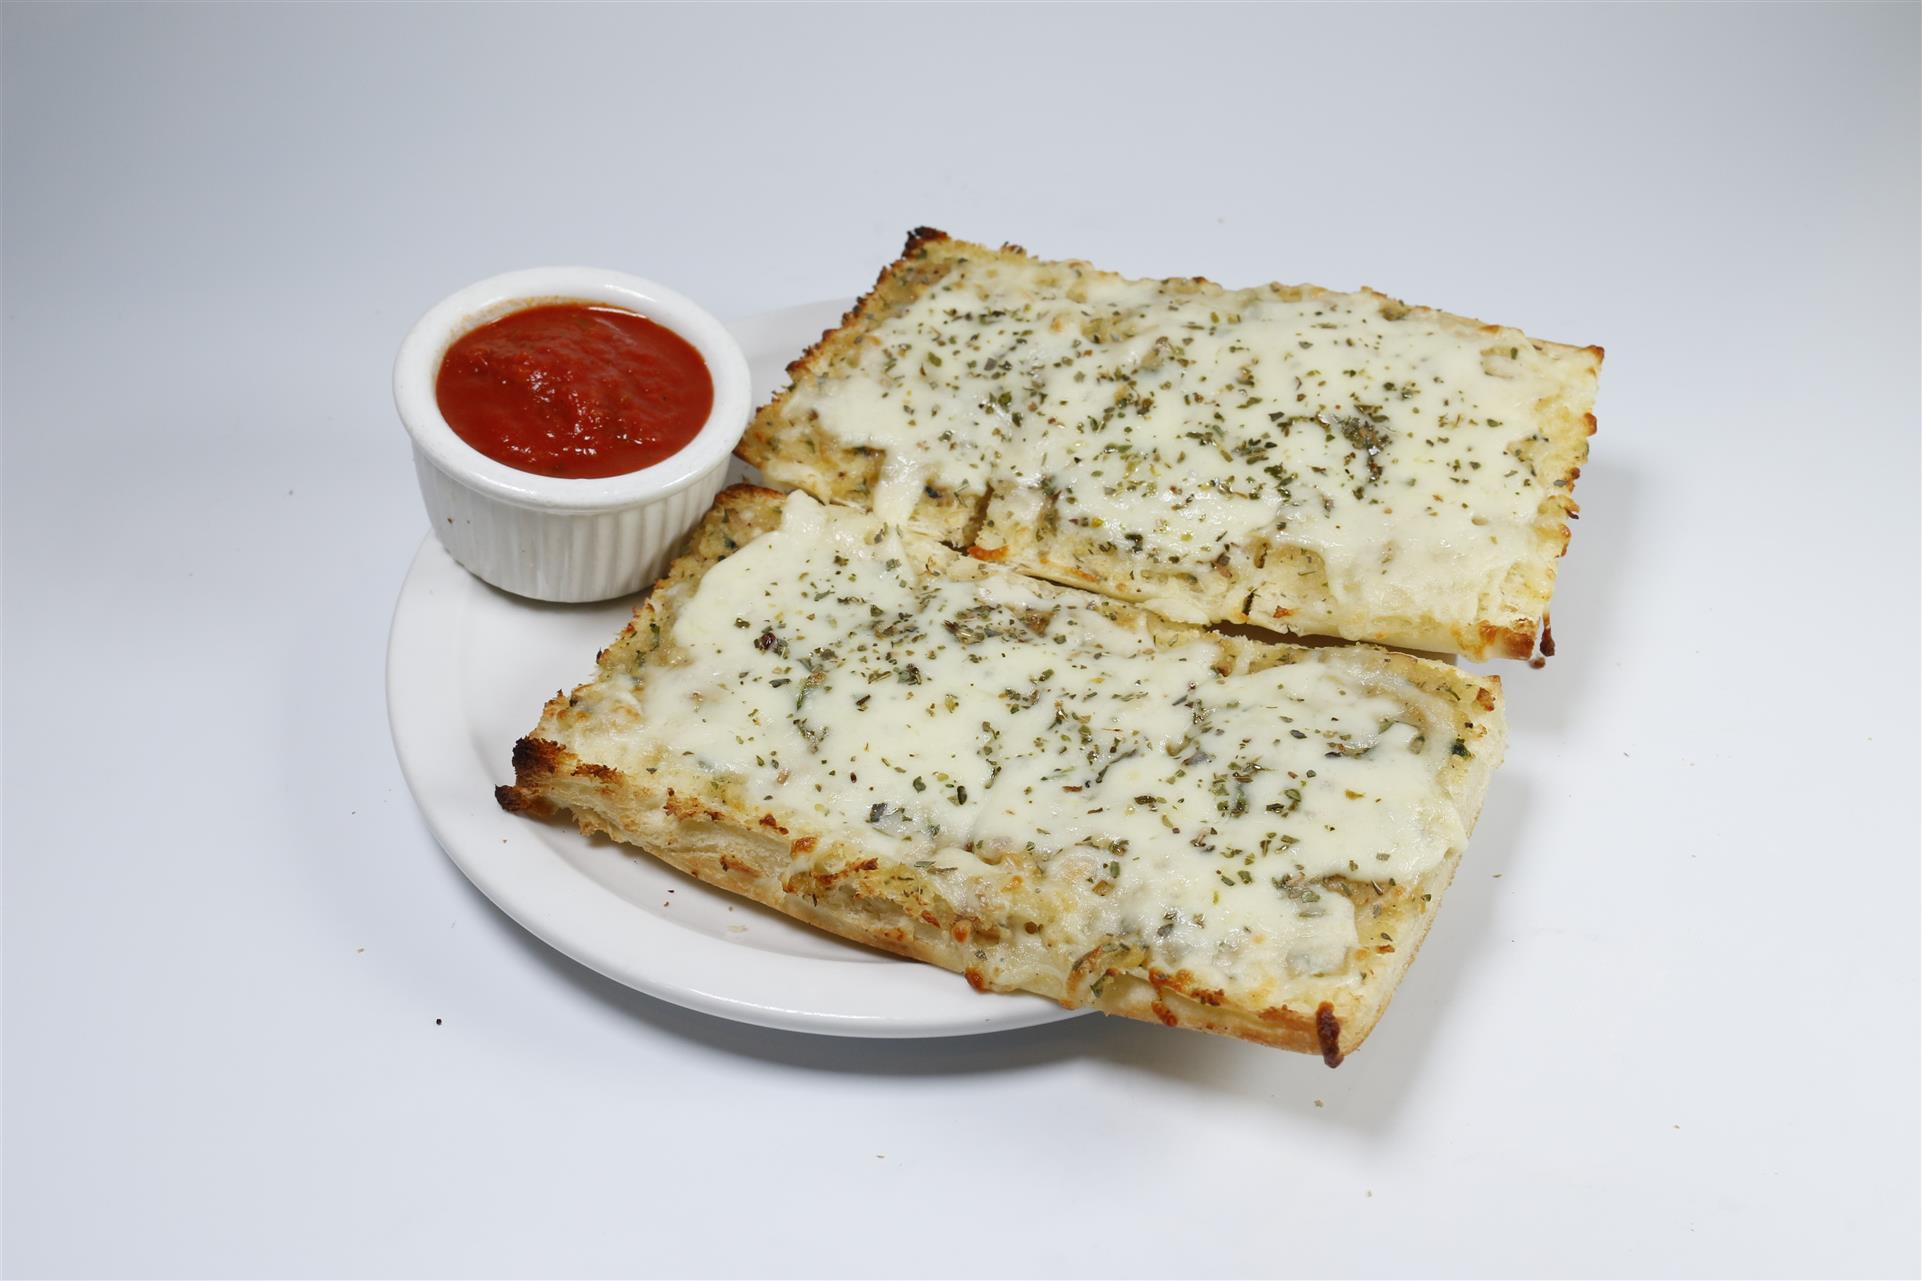 Cheesy Garlic Bread with a side of marinara sauce